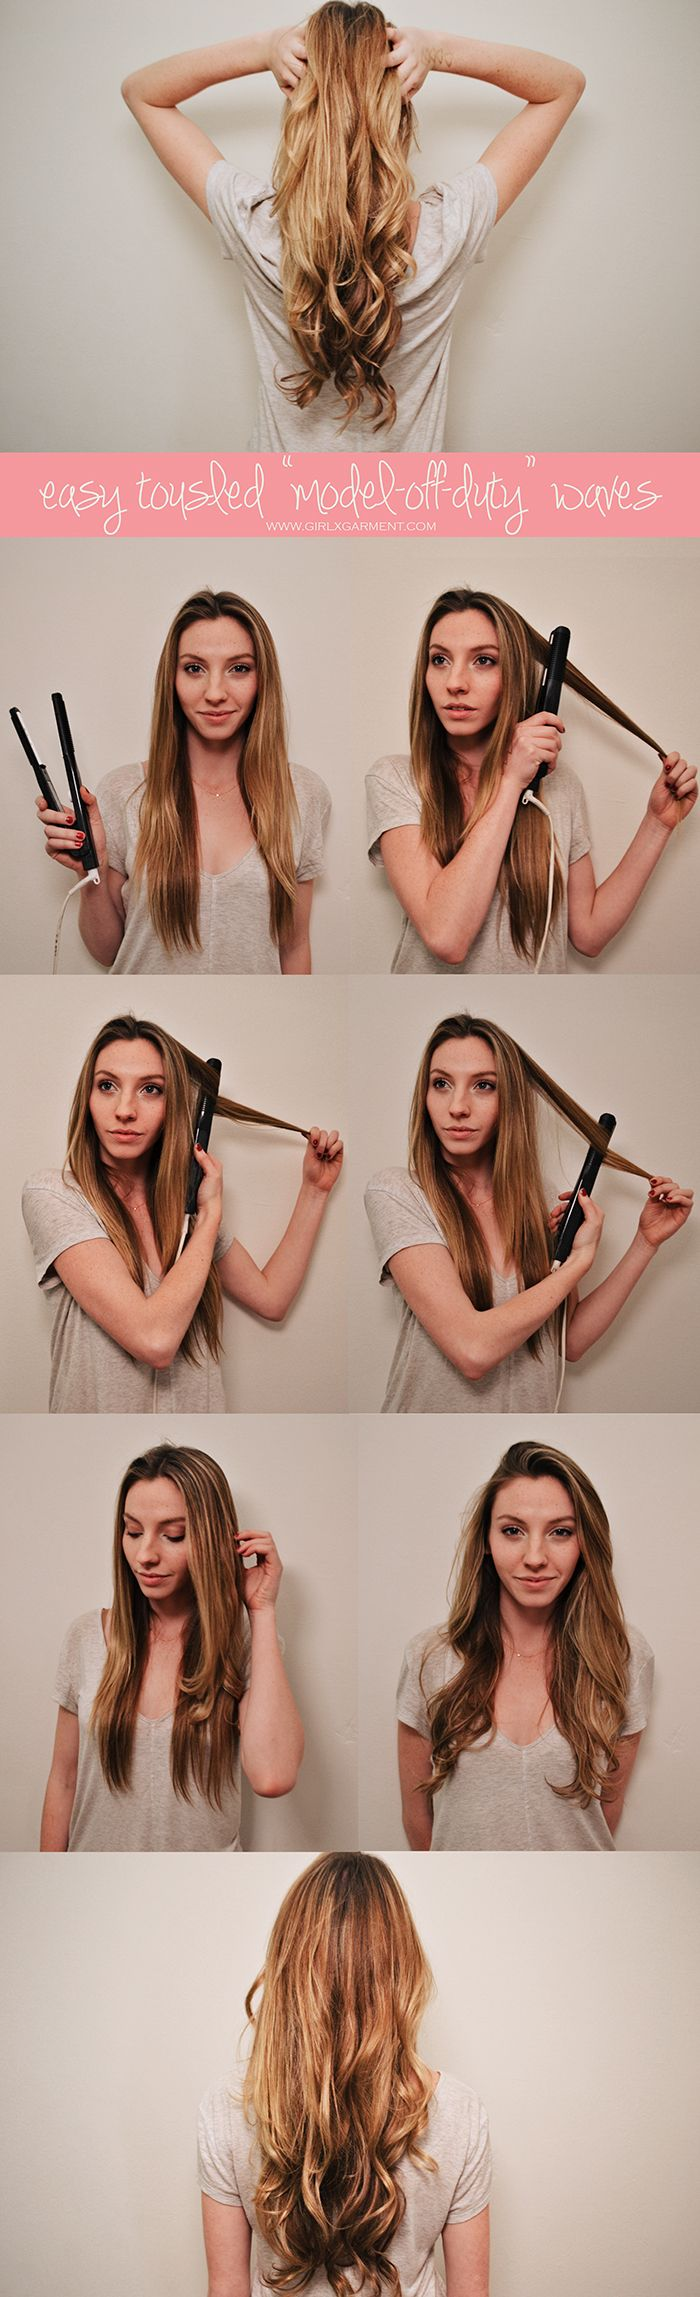 "I'm still surprised at how easy it is to do this. I normally wear my hair  stick-straight, since that's how it is naturally and thus requires zero  effort (aka I can sleep longer), but in the past few weeks I've been using  this super quick & easy trick on the occasional morning before I head to a  casting. And, while I do feel like I've gotten one step closer to achieving  that Kate Moss-esque ""model off duty"" hair, the real reason why I've  continued to do it is because this takes me ..."